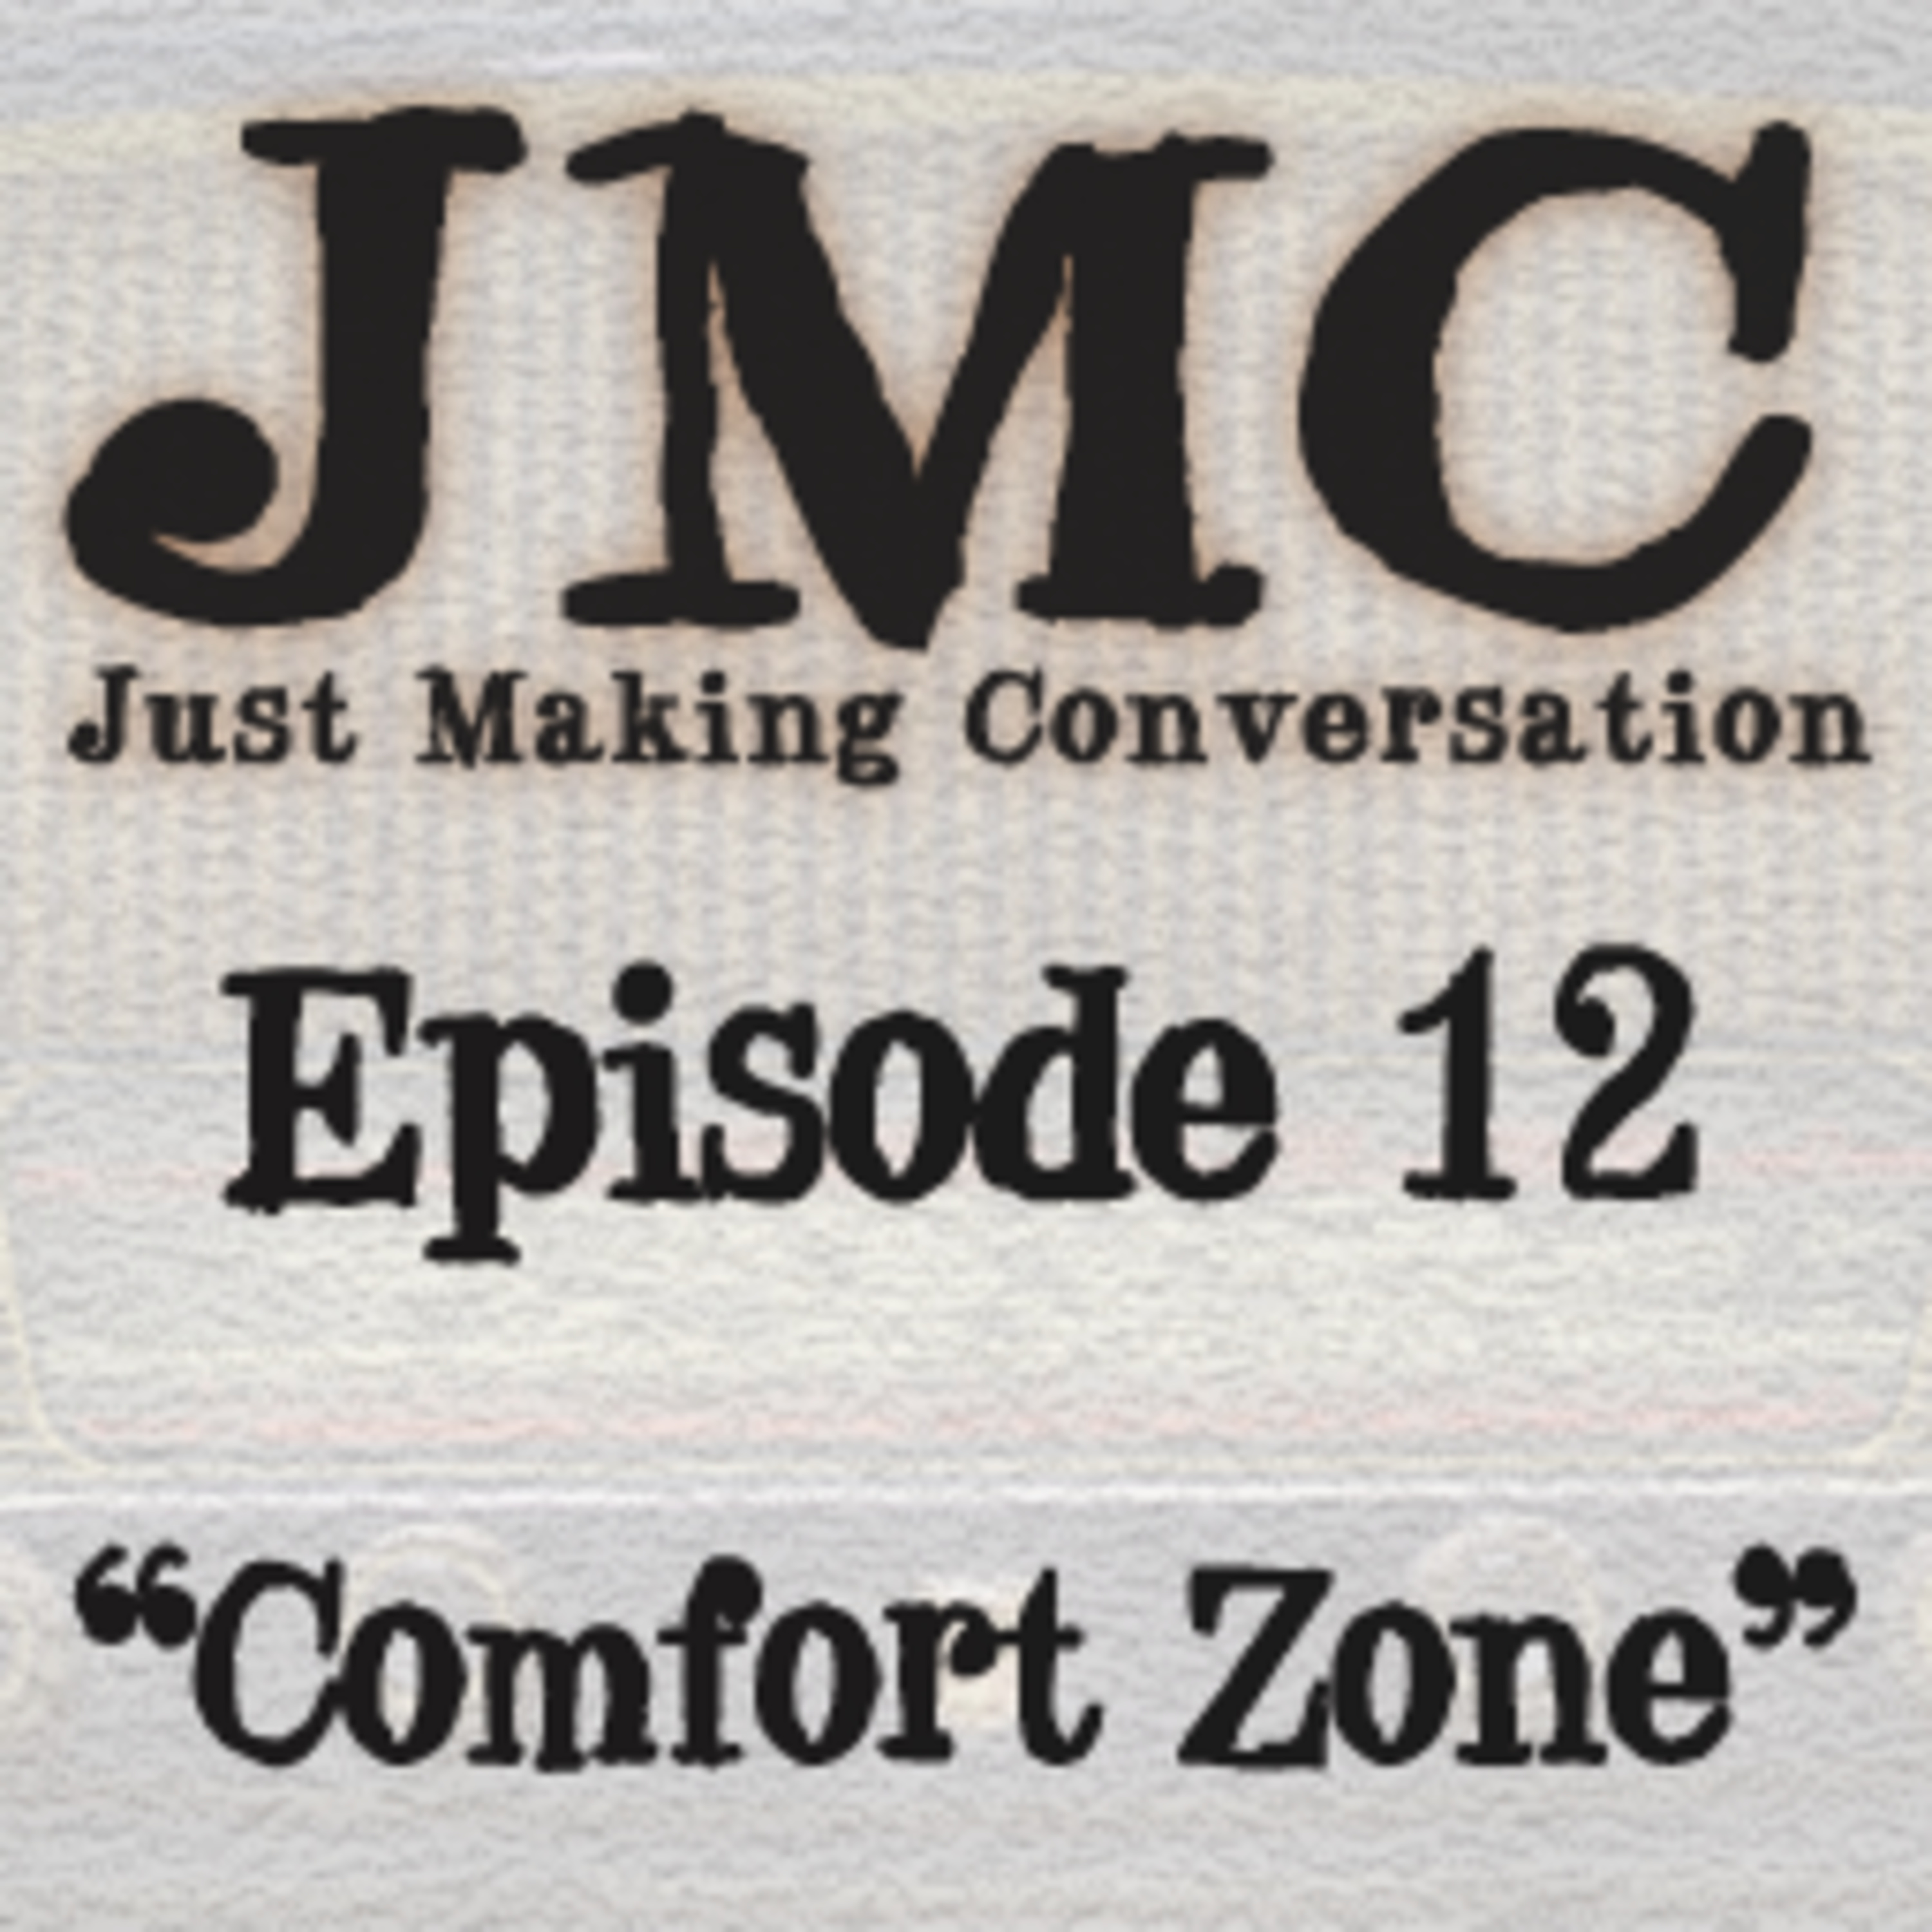 Comfort Zone. As Kenny Logins never said, have you been right into the comfort zone?